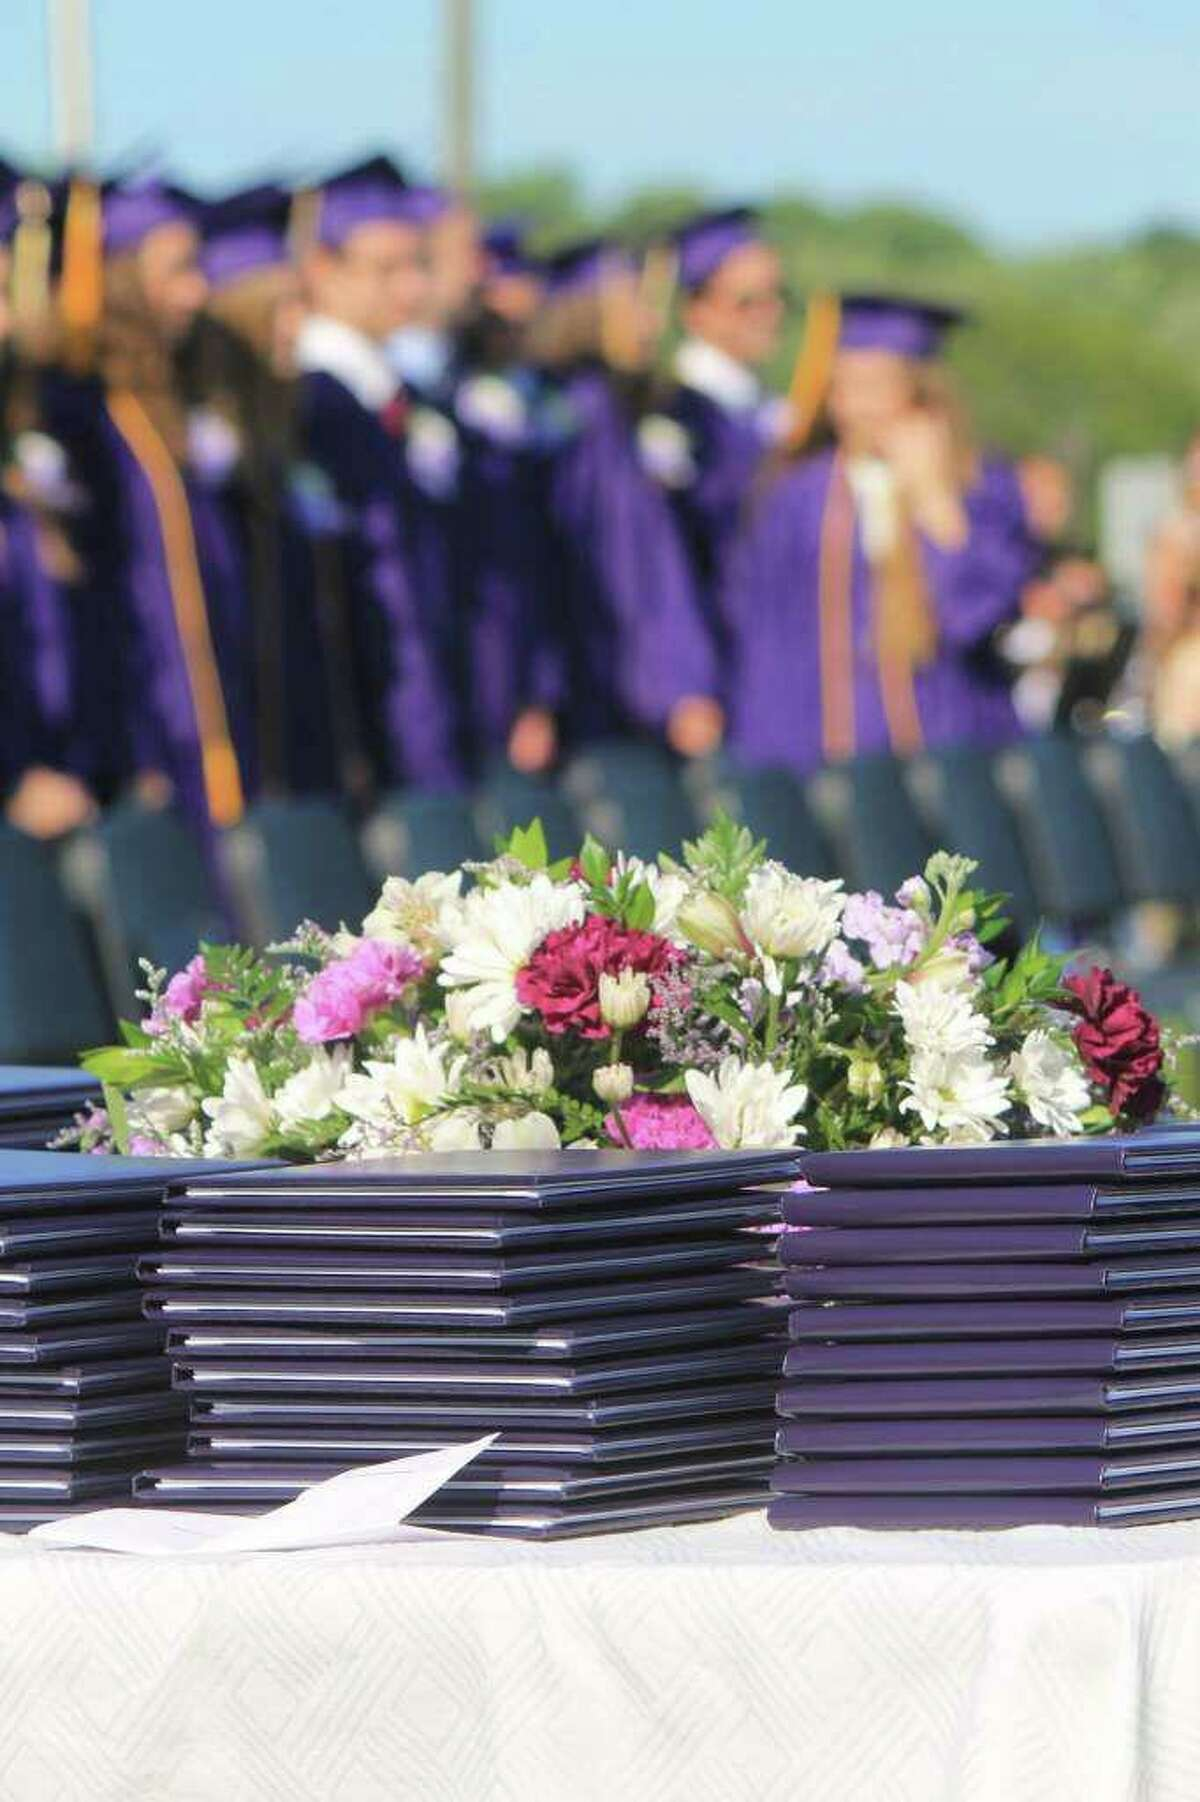 FILE PHOTO - Diplomas are stacked at the Westbrook High School graduation ceremony 2018. The high school is planning to hold an outdoor prom on May 1 and graduation on June 11.